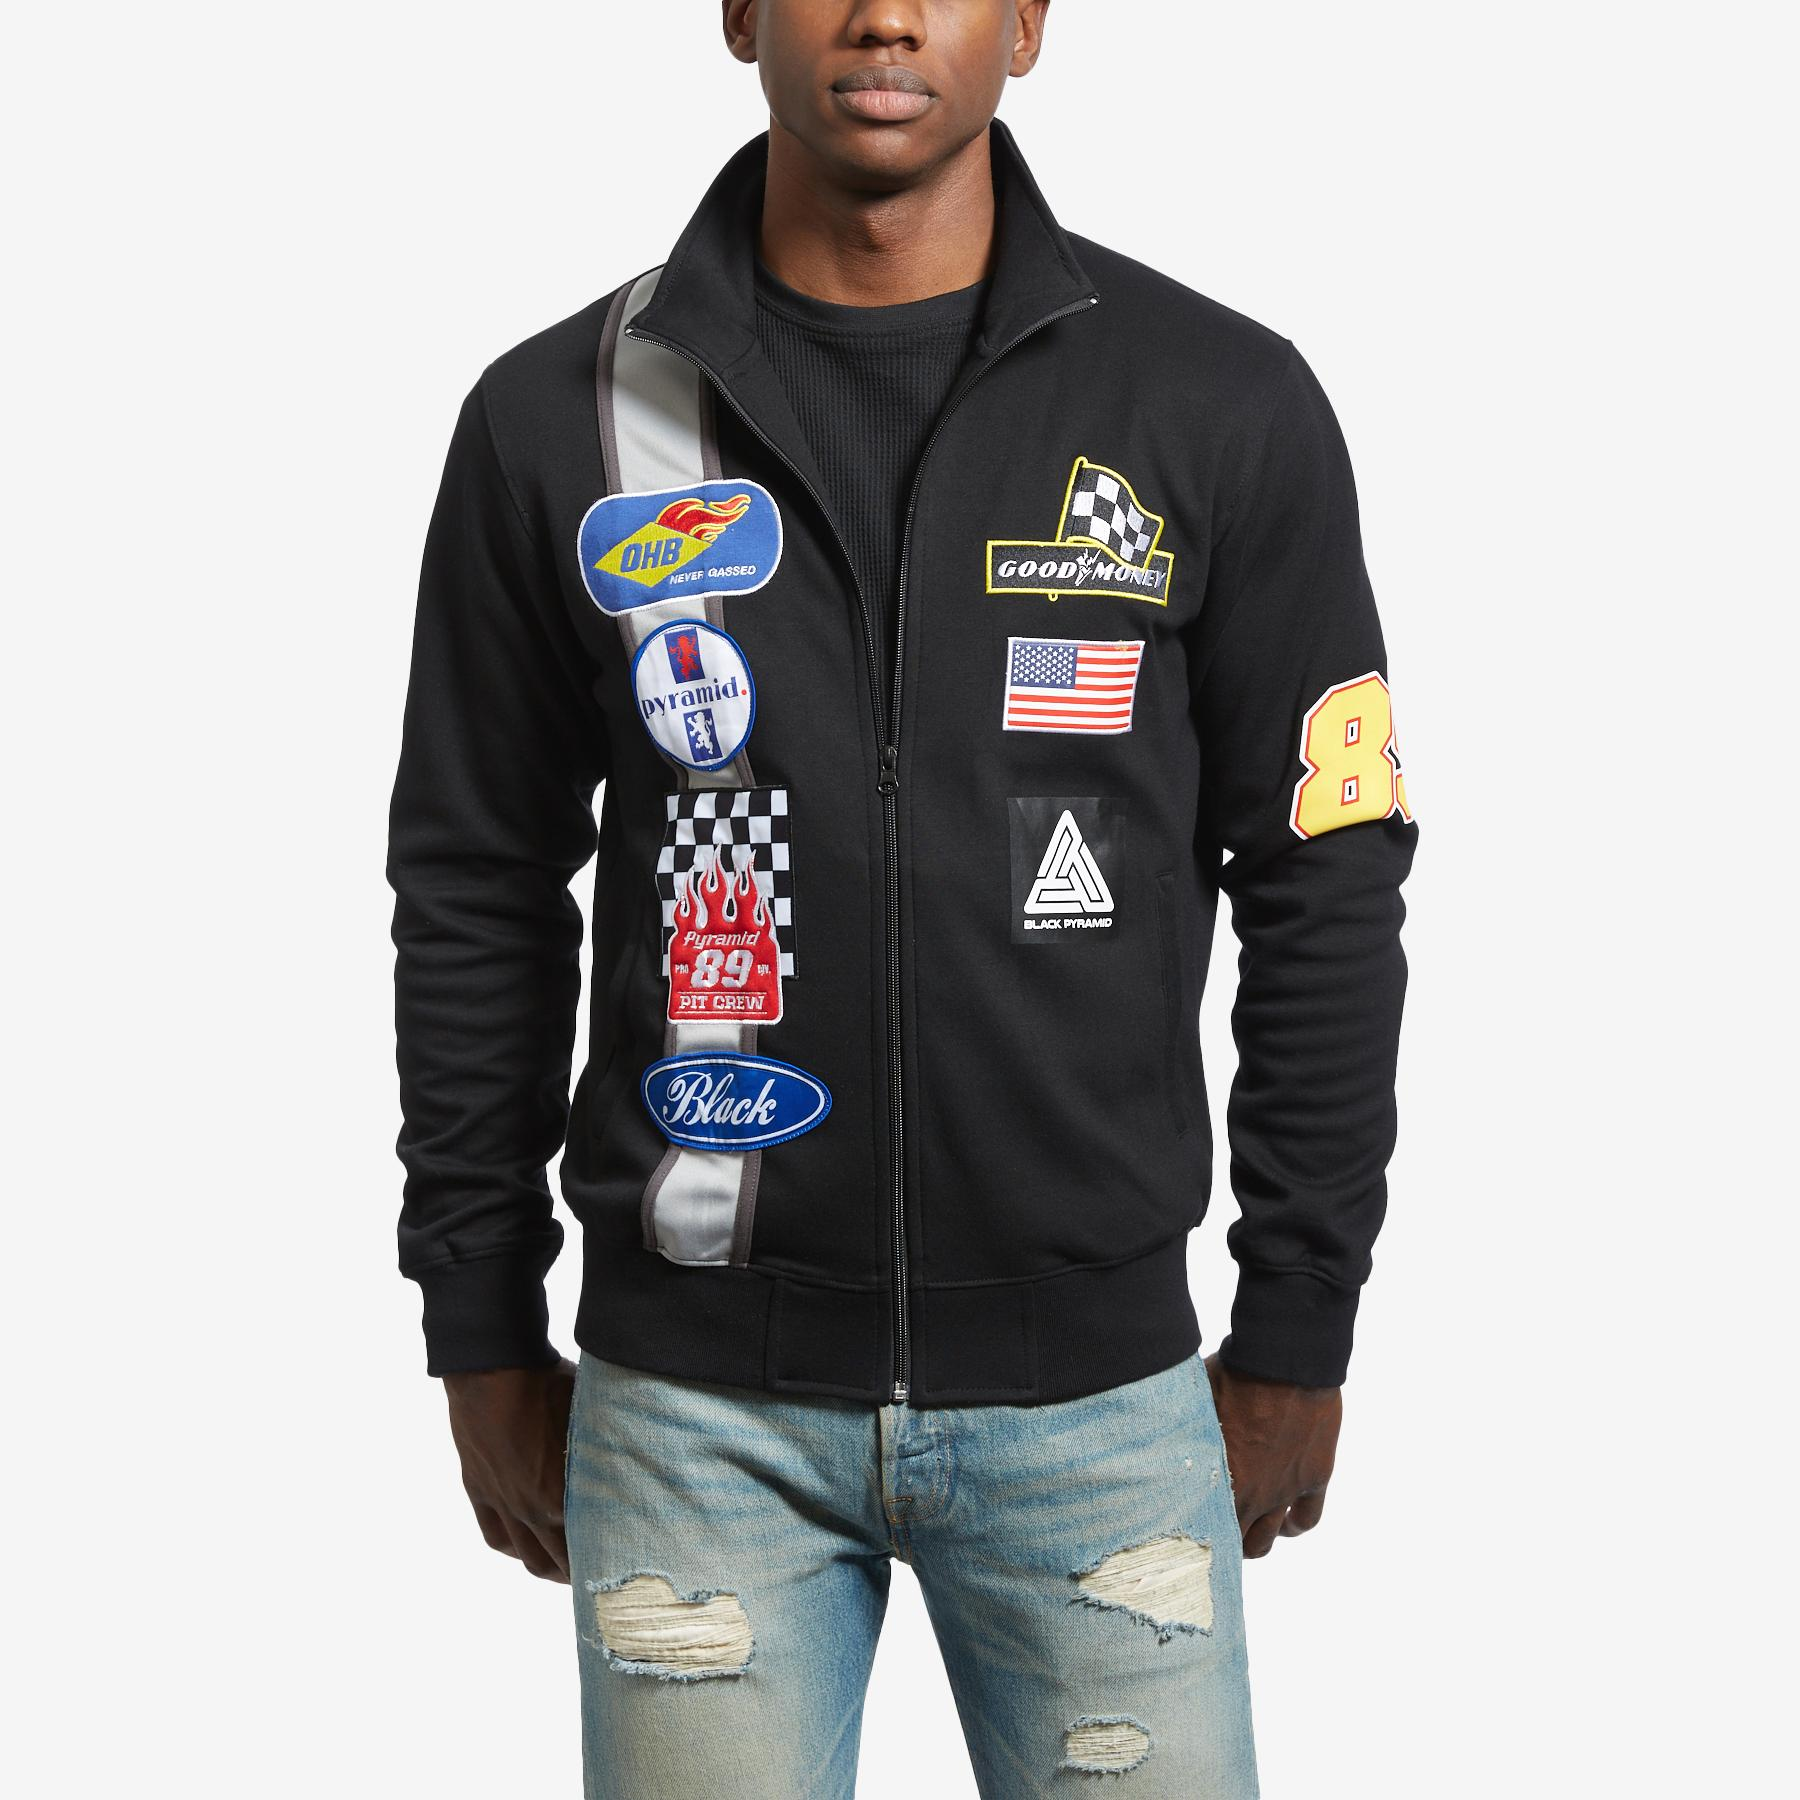 Men's Grease Monkey Track Jacket